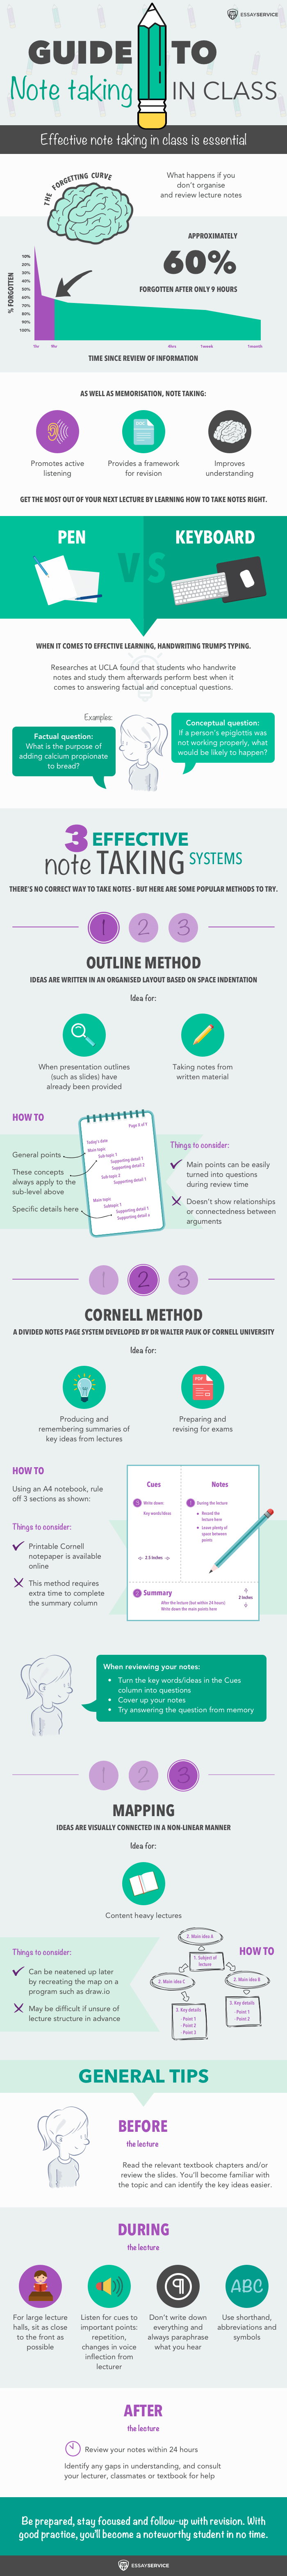 infographic on Note-Taking in Class